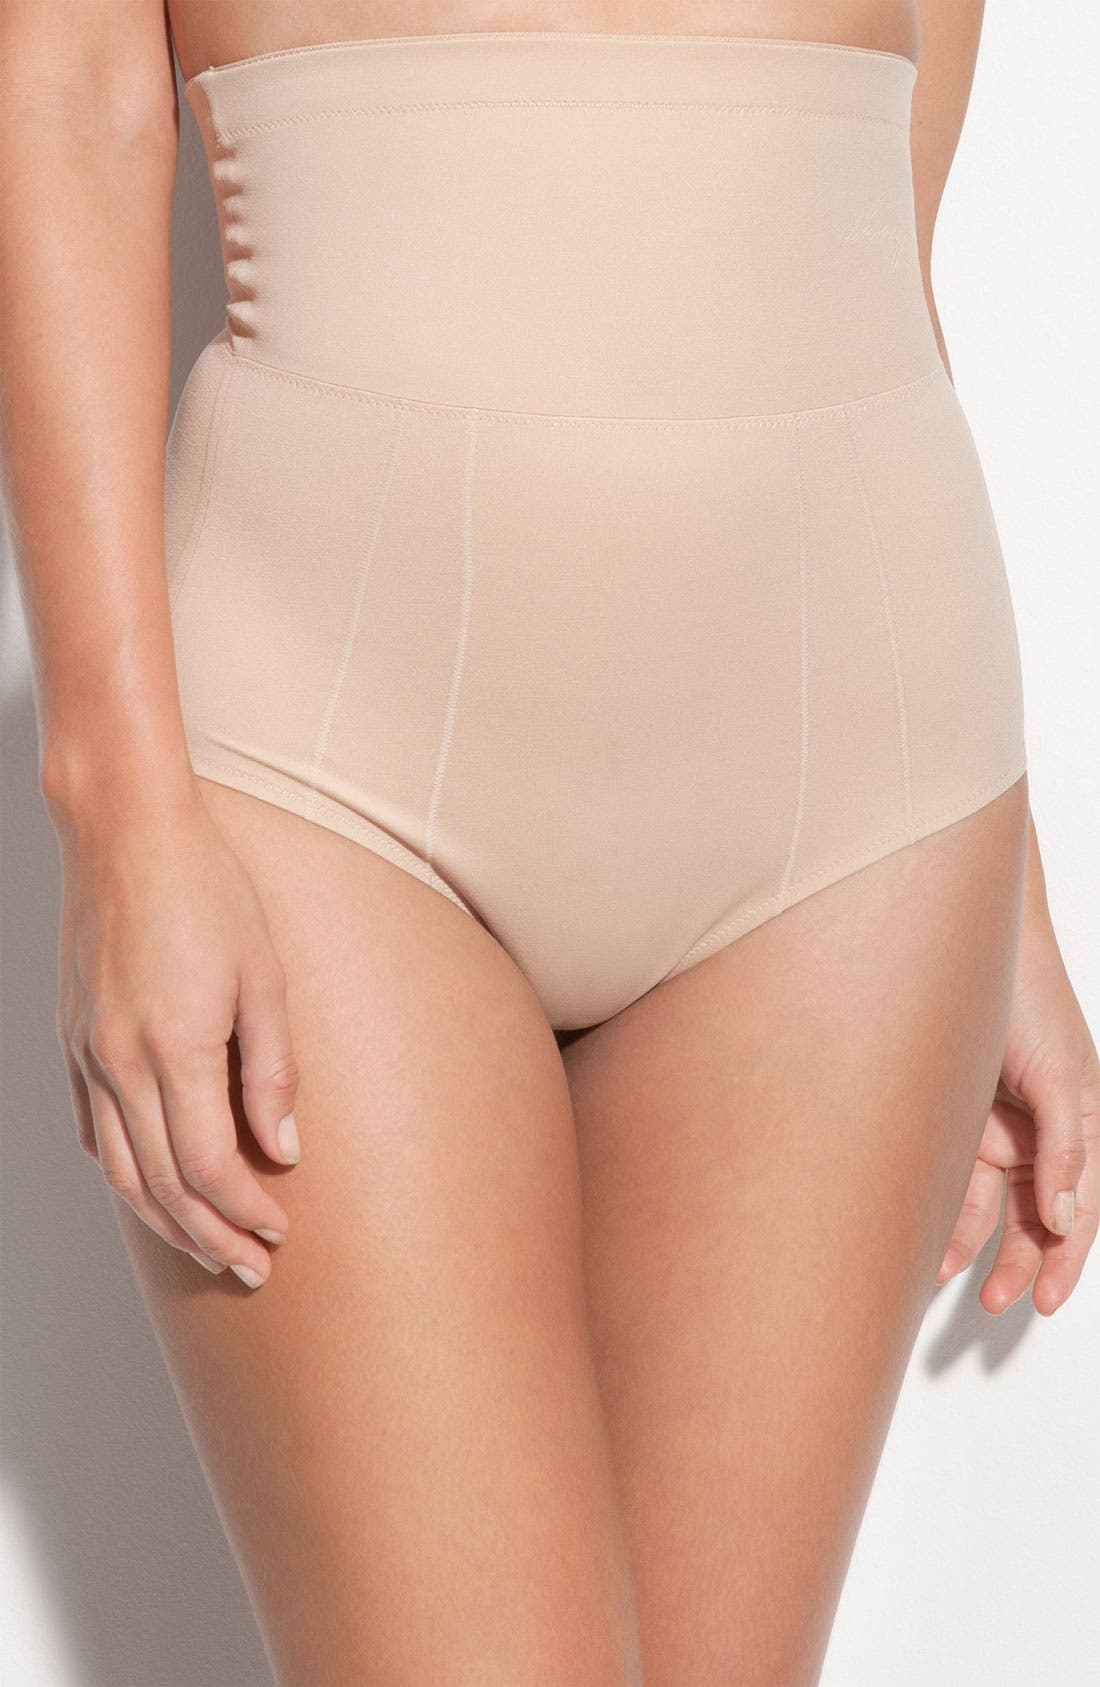 Alternate Image 1 Selected - DKNY 'Fusion' Thong Back Waist Cincher